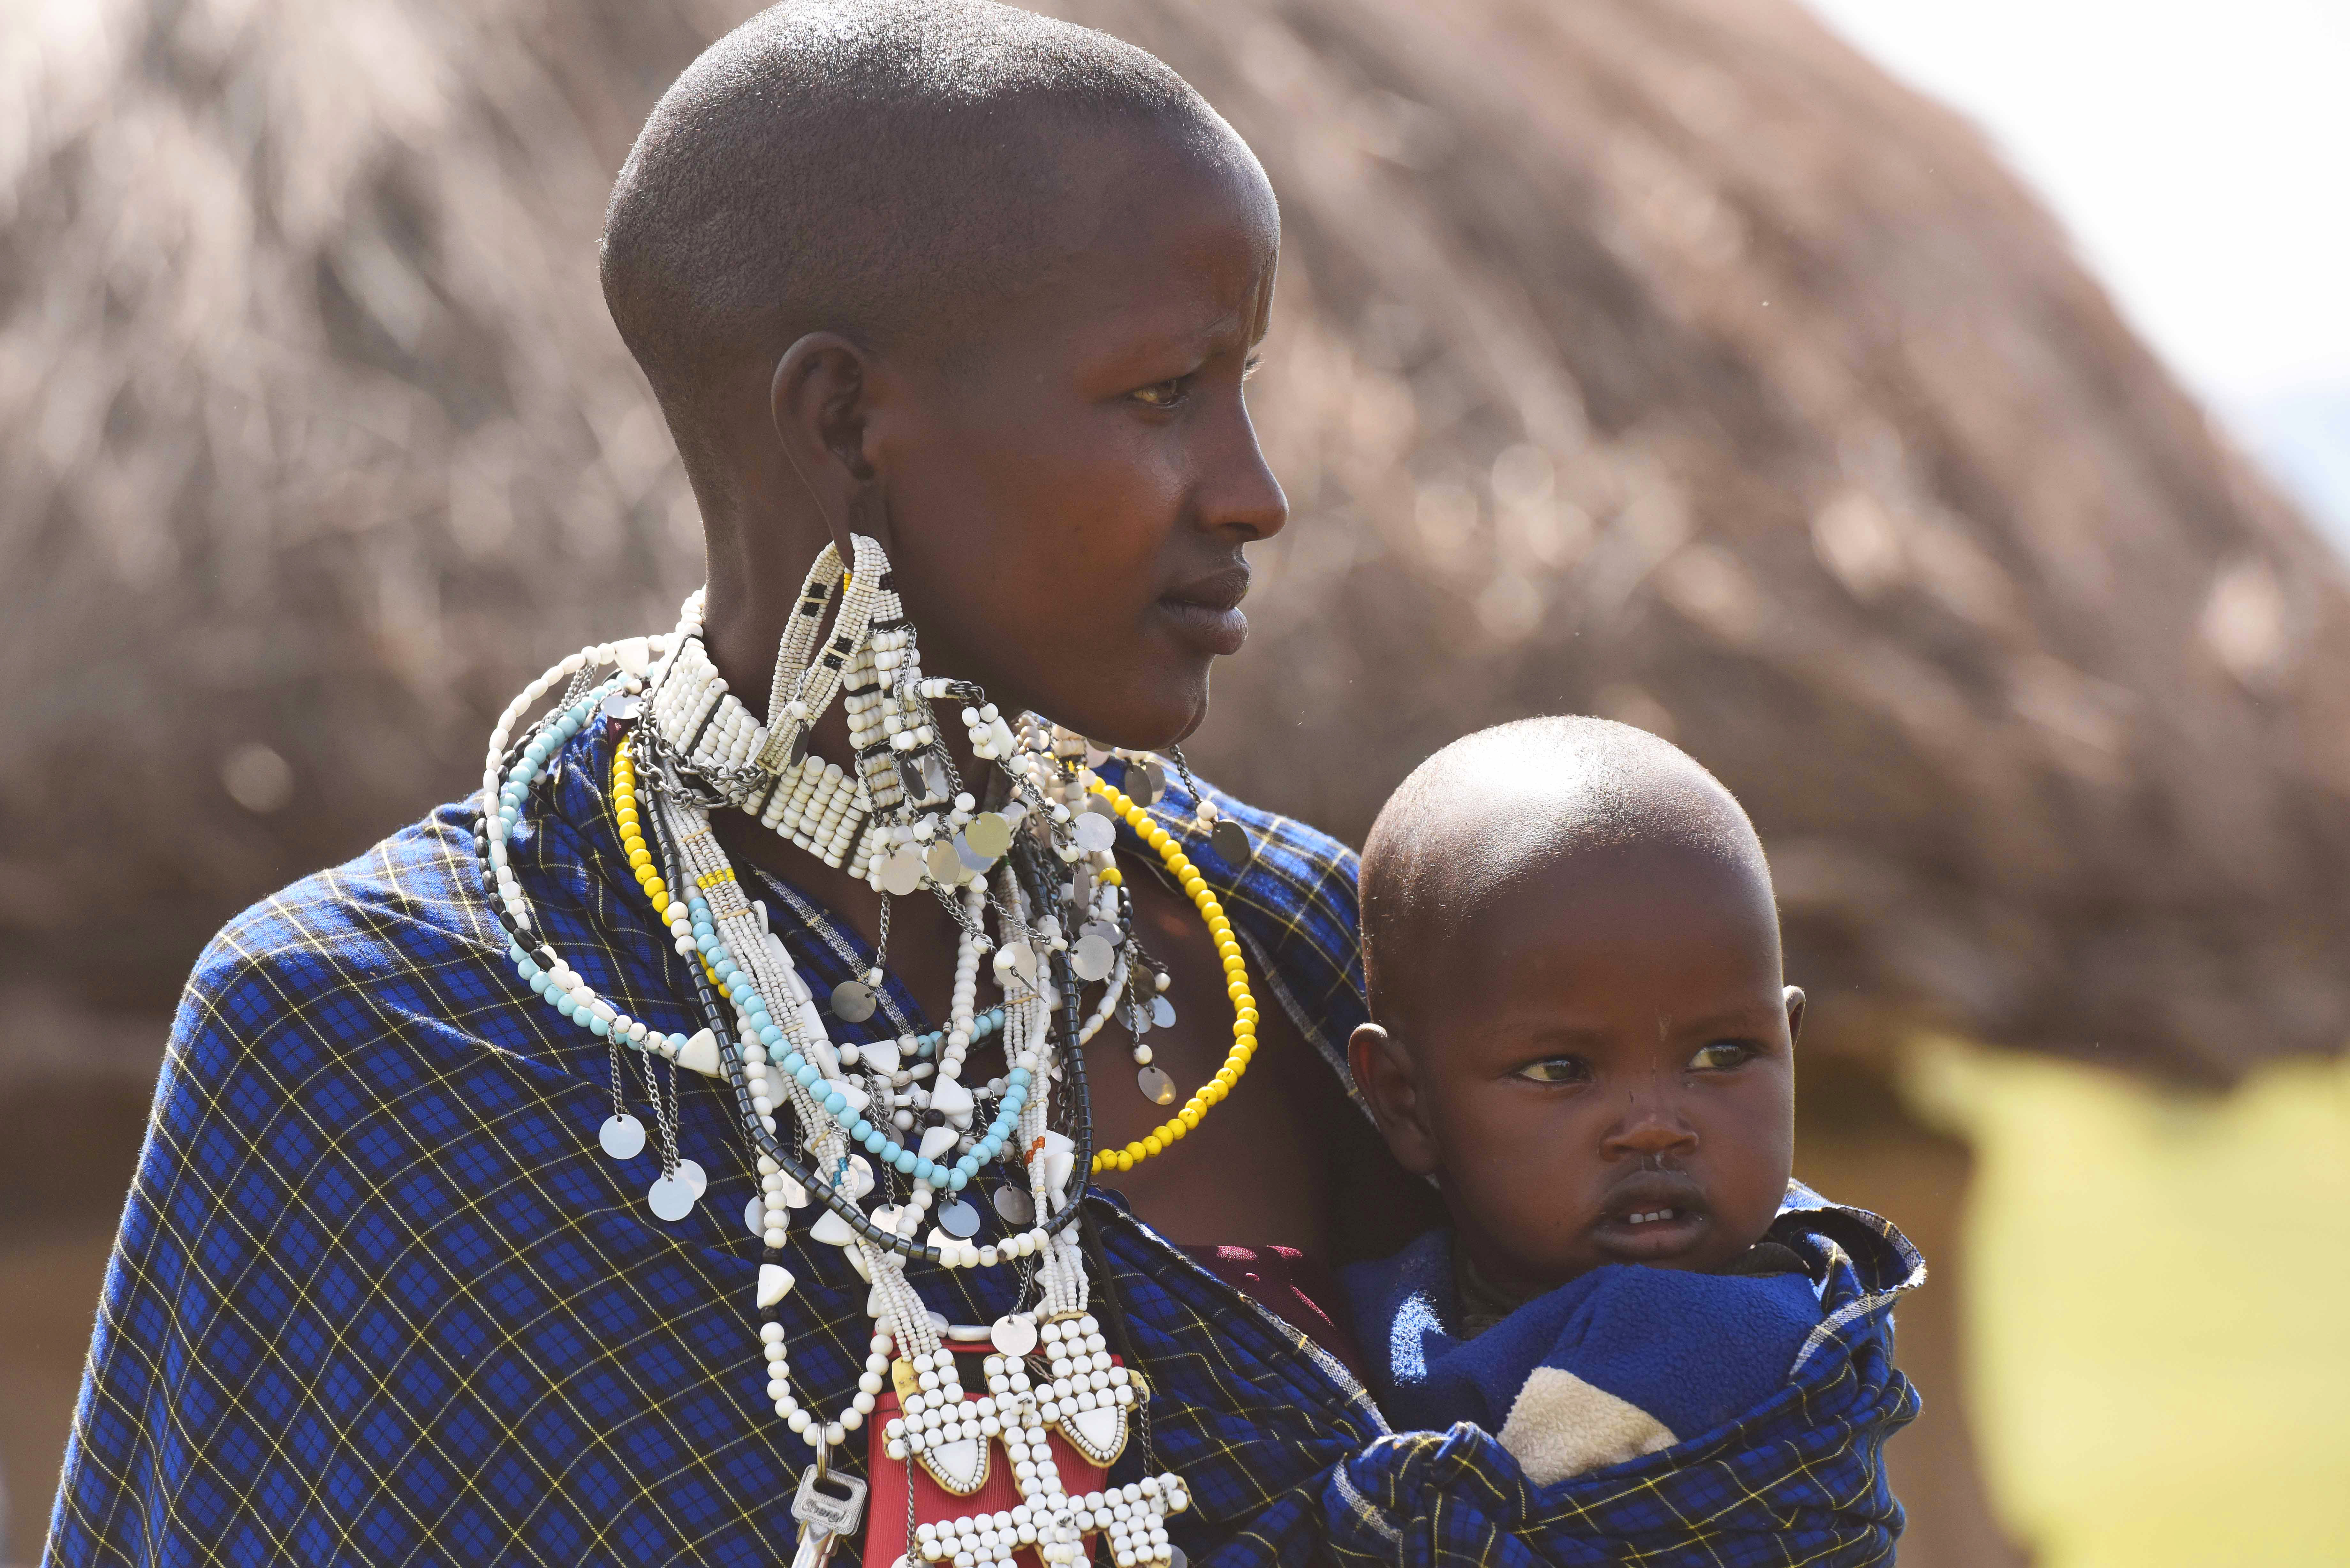 A mother from the Maasai tribe holds her child May 21, 2015.  During a culture day of a Gender Mainstreaming seminar, attendees visited the Maasai Village to experience their culture, traditions and lifestyle. (U.S. Air Force photo by Staff Sgt. Maria Bowman)